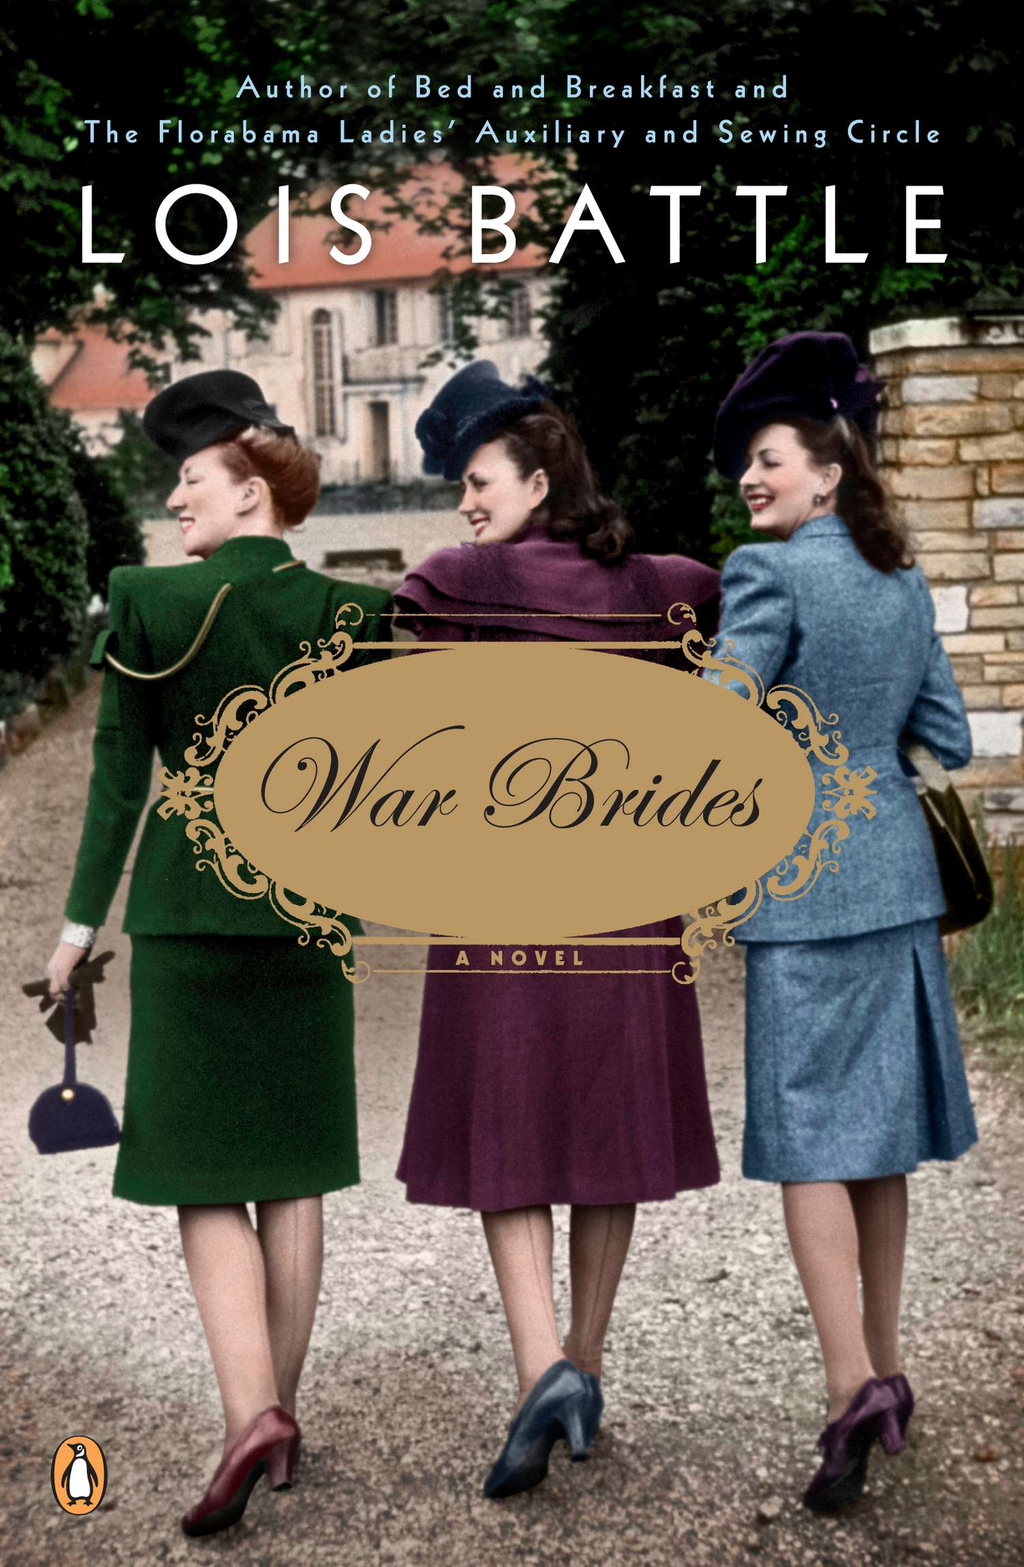 War Brides By: Lois Battle